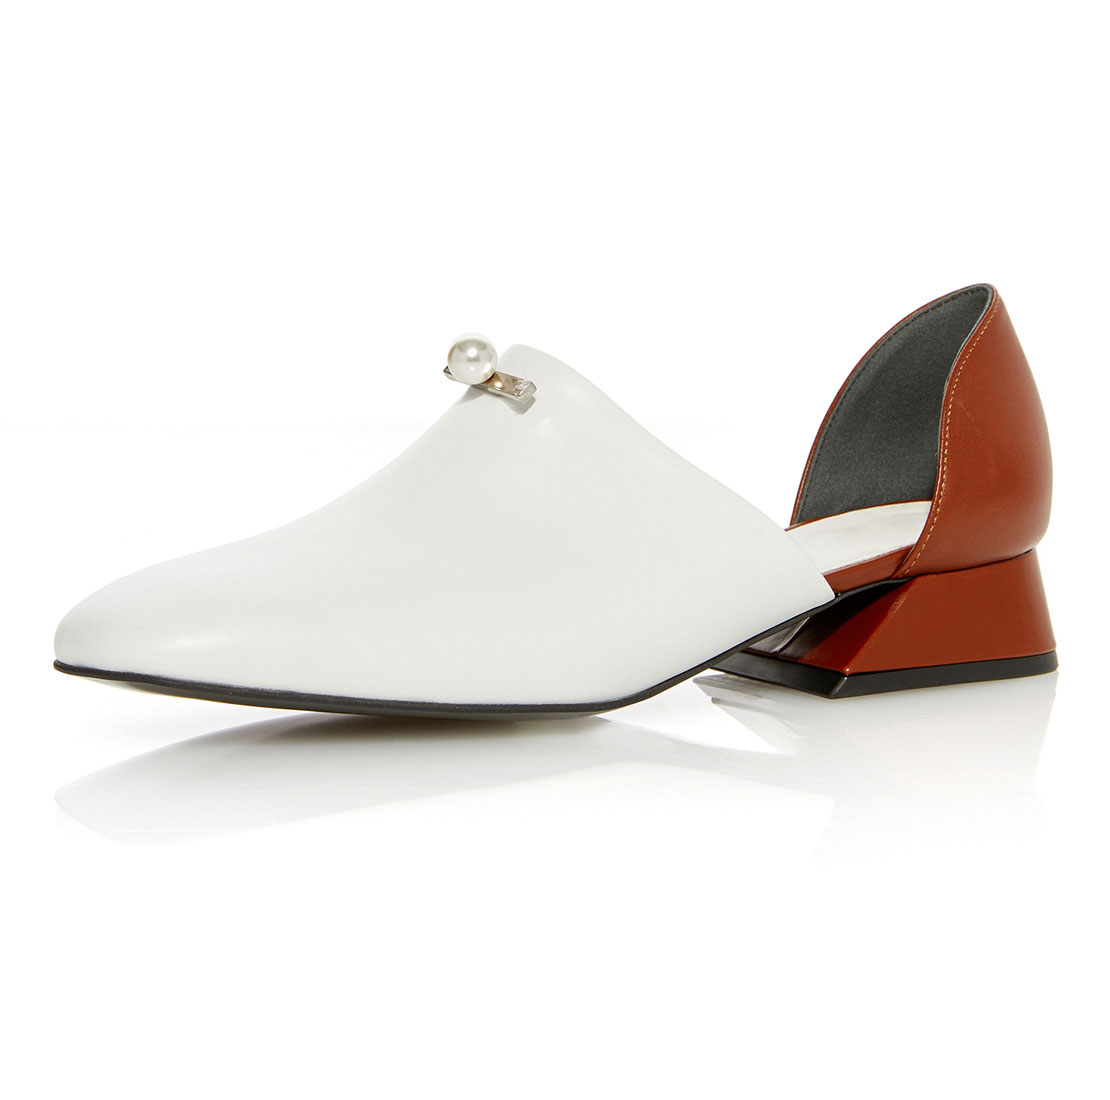 High quality leather white and red heels pearls ladies fashion footwear YB4006